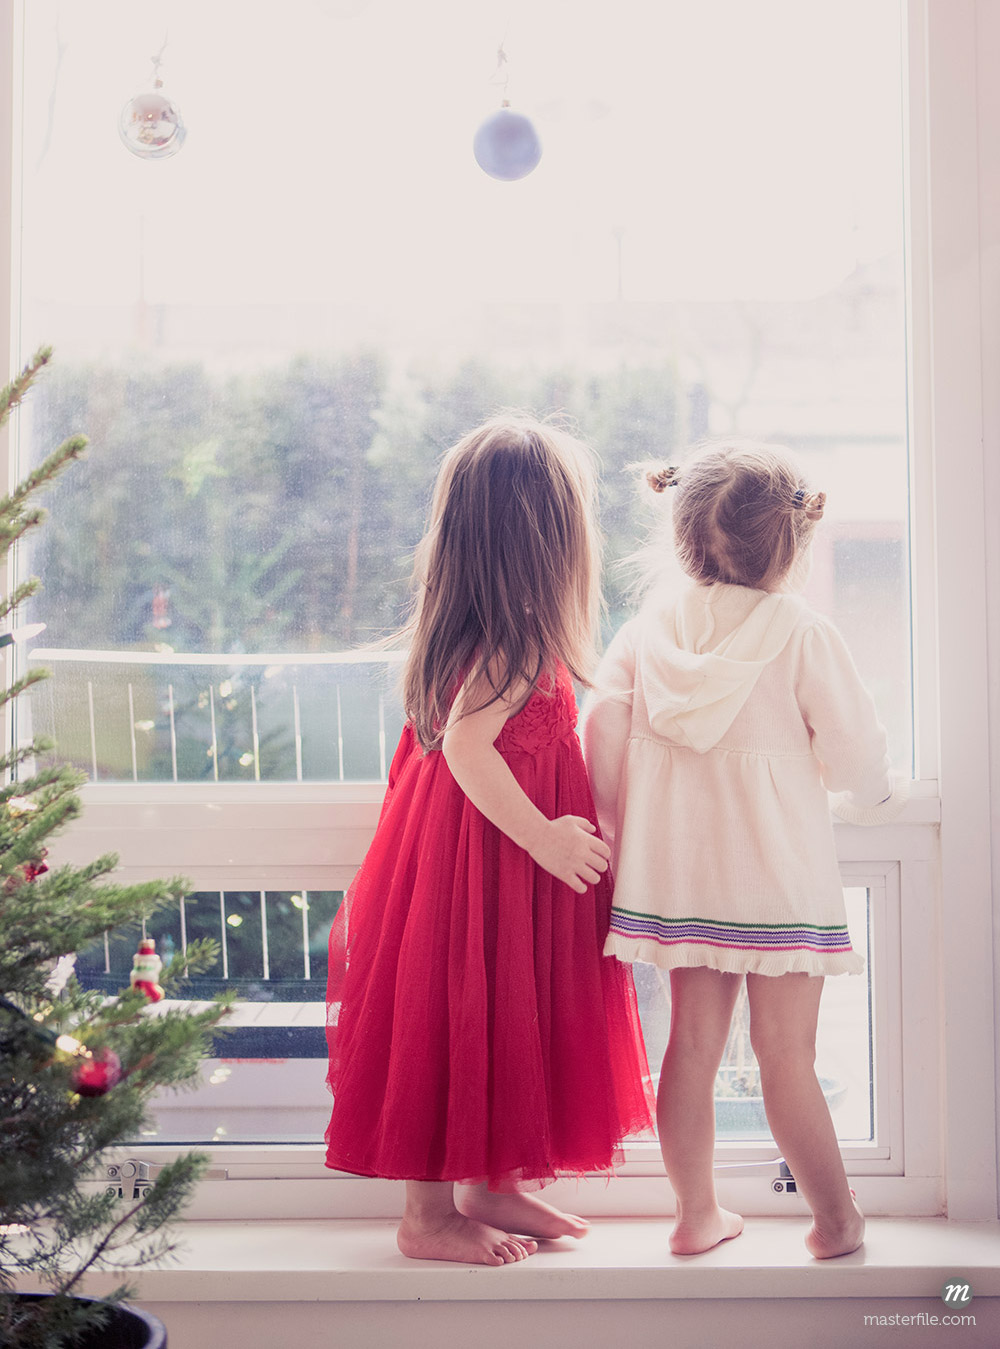 Girls on window ledge below Christmas ornaments © Masterfile